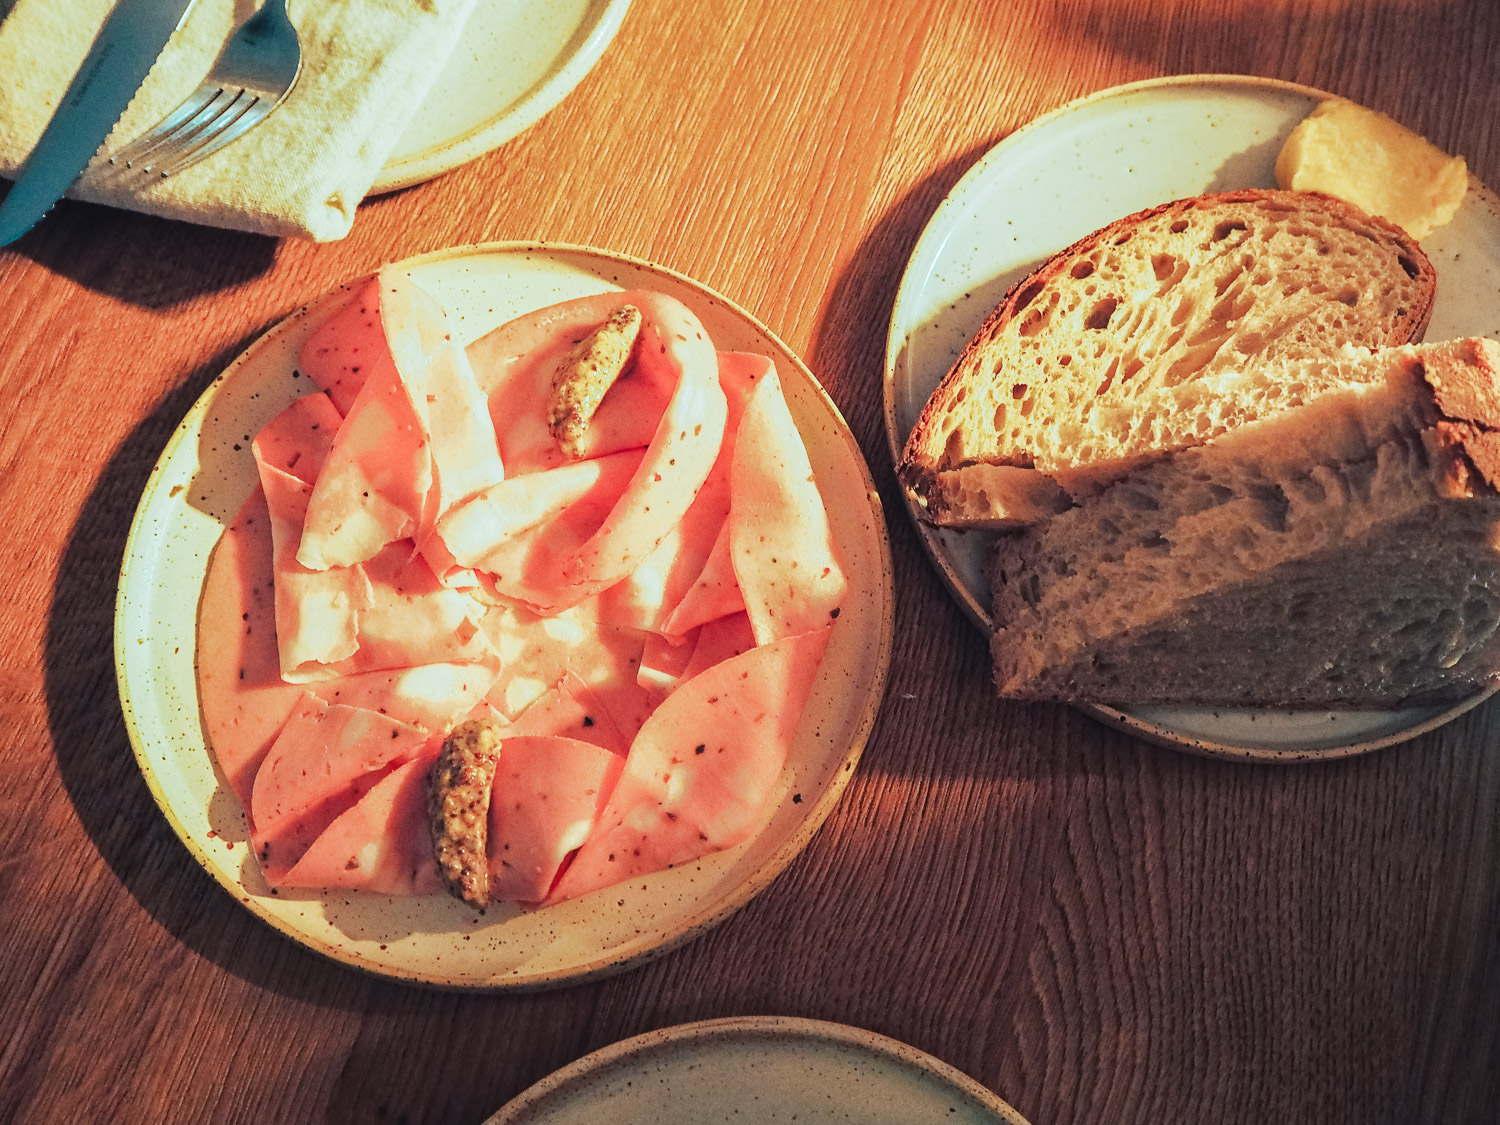 St John's Bakery sourdough bread with homemade cultured butter and Truffle mortadella with VB mustard - Milk Beach restaurant in Queen's Park, London